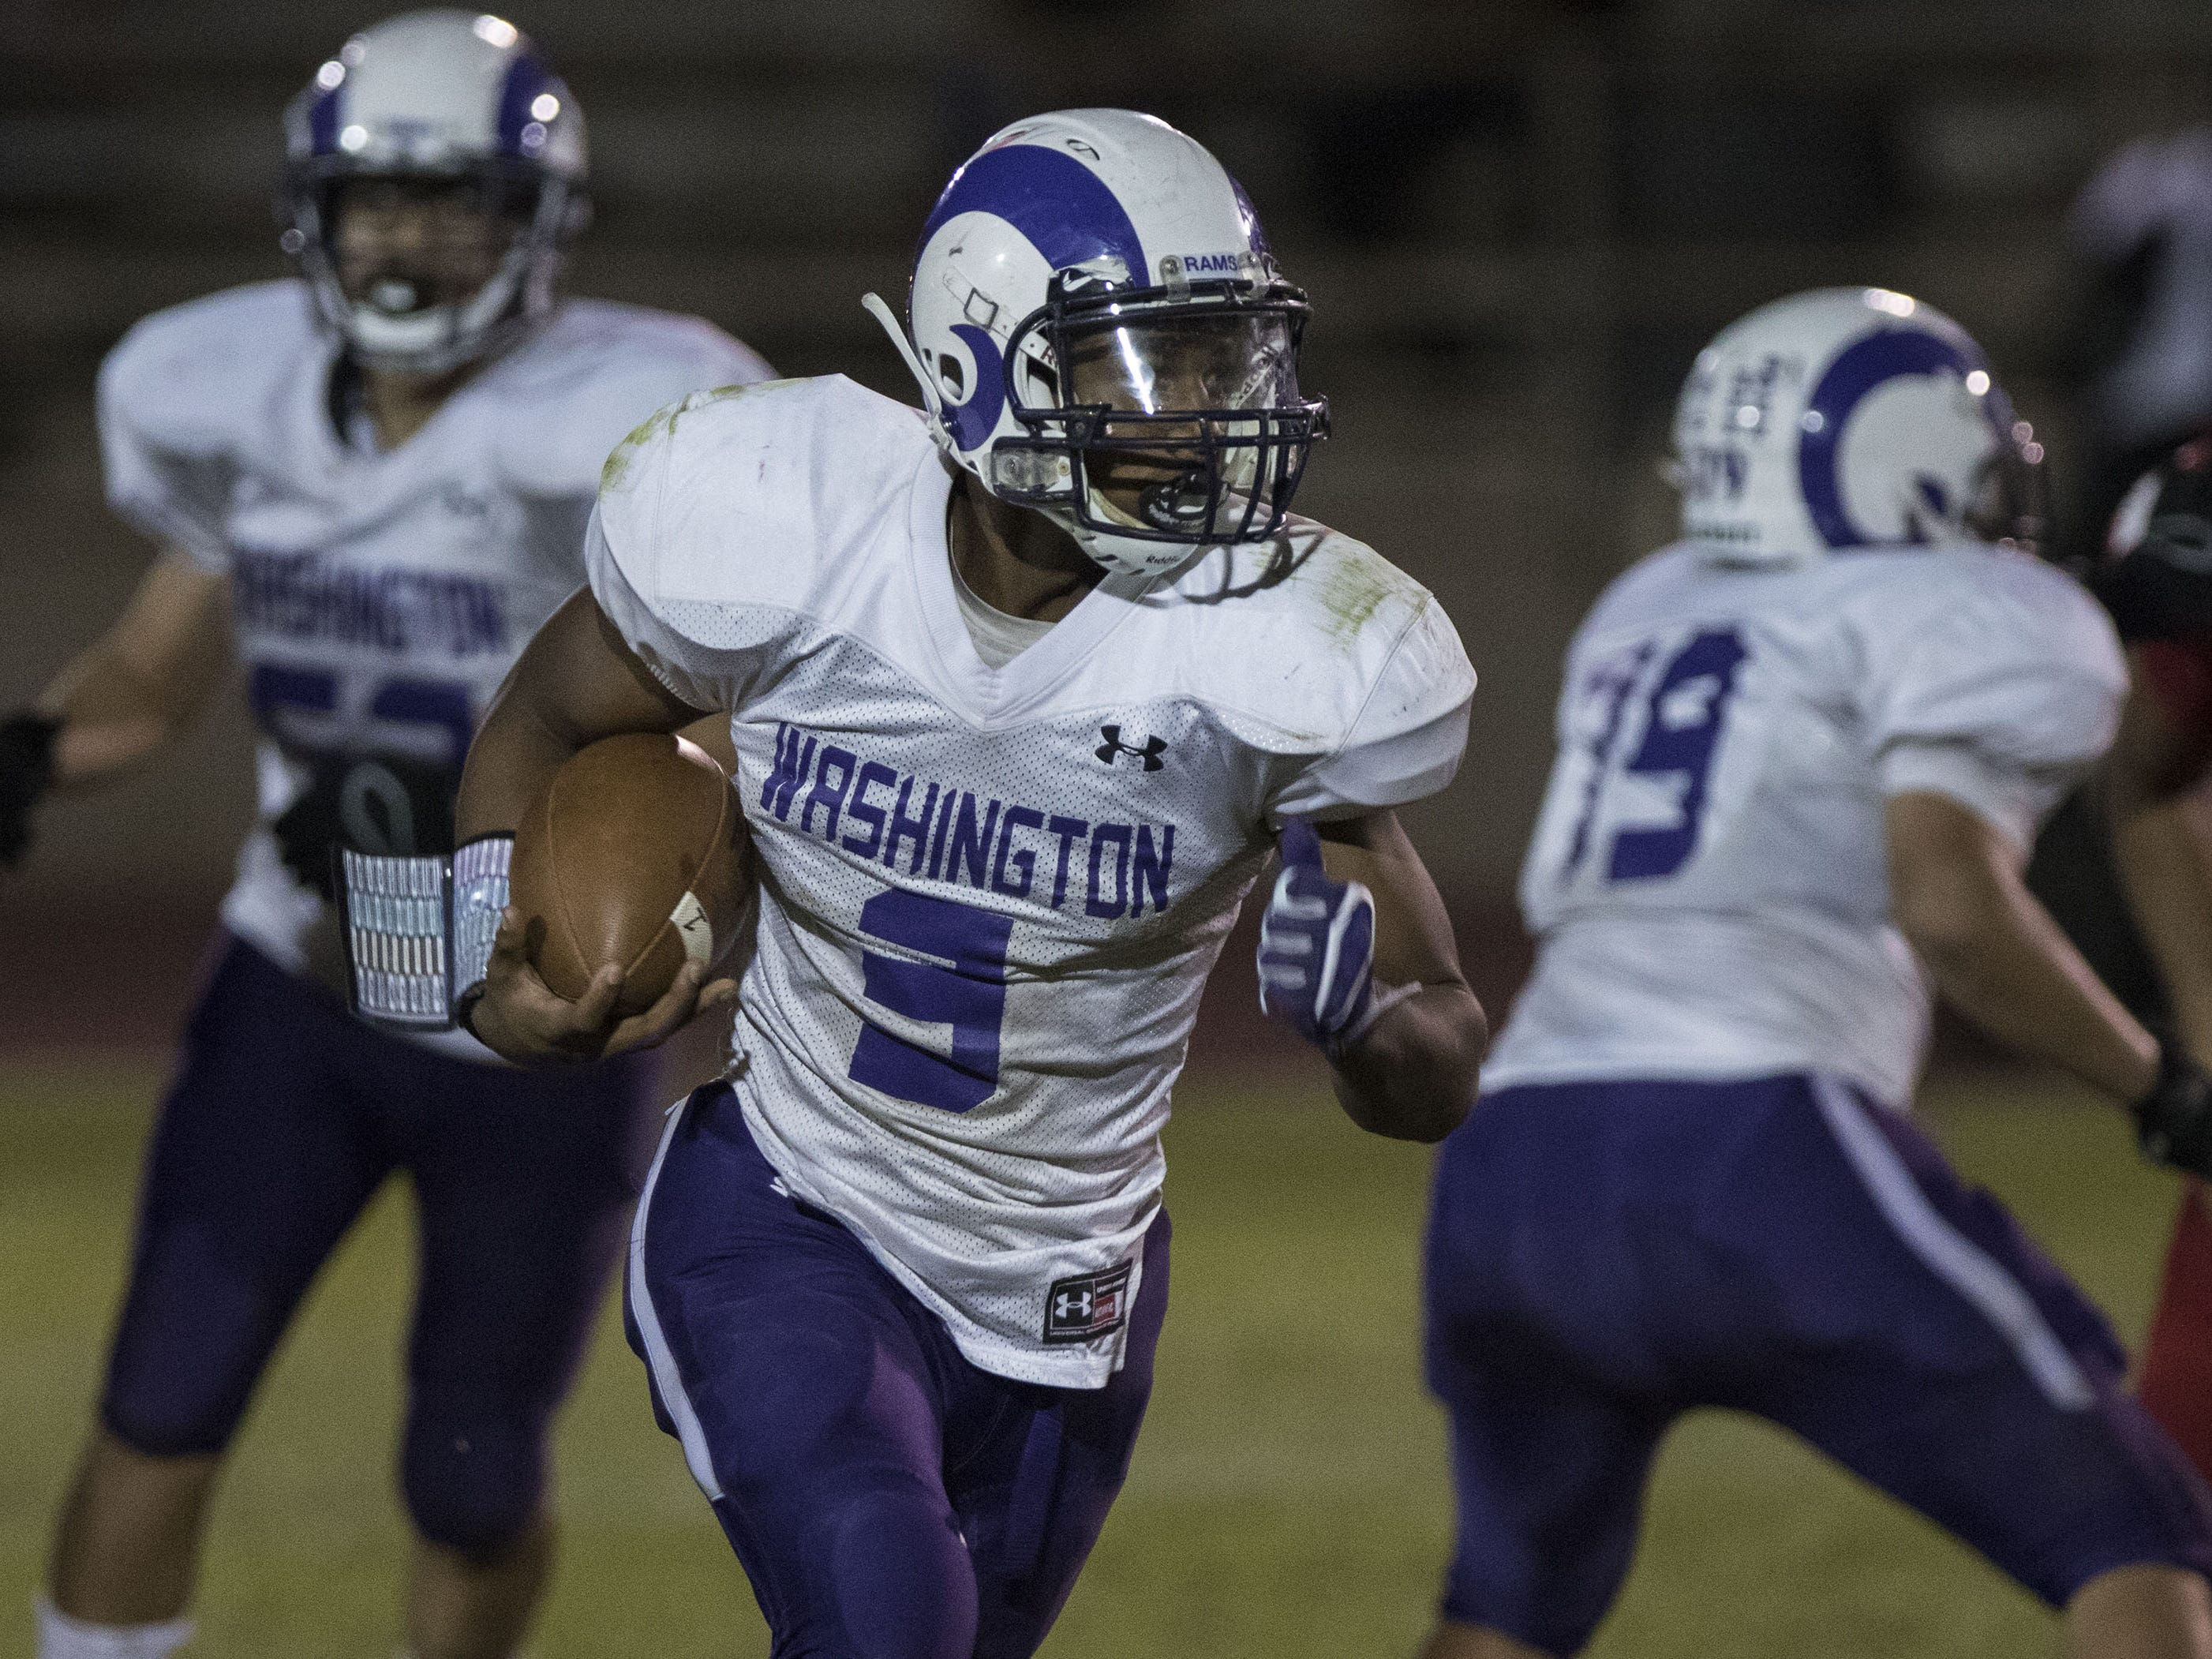 Washington's Travion Hughes looks for running room against Glendale during their game in Glendale Friday, Oct. 5, 2018. #azhsfb